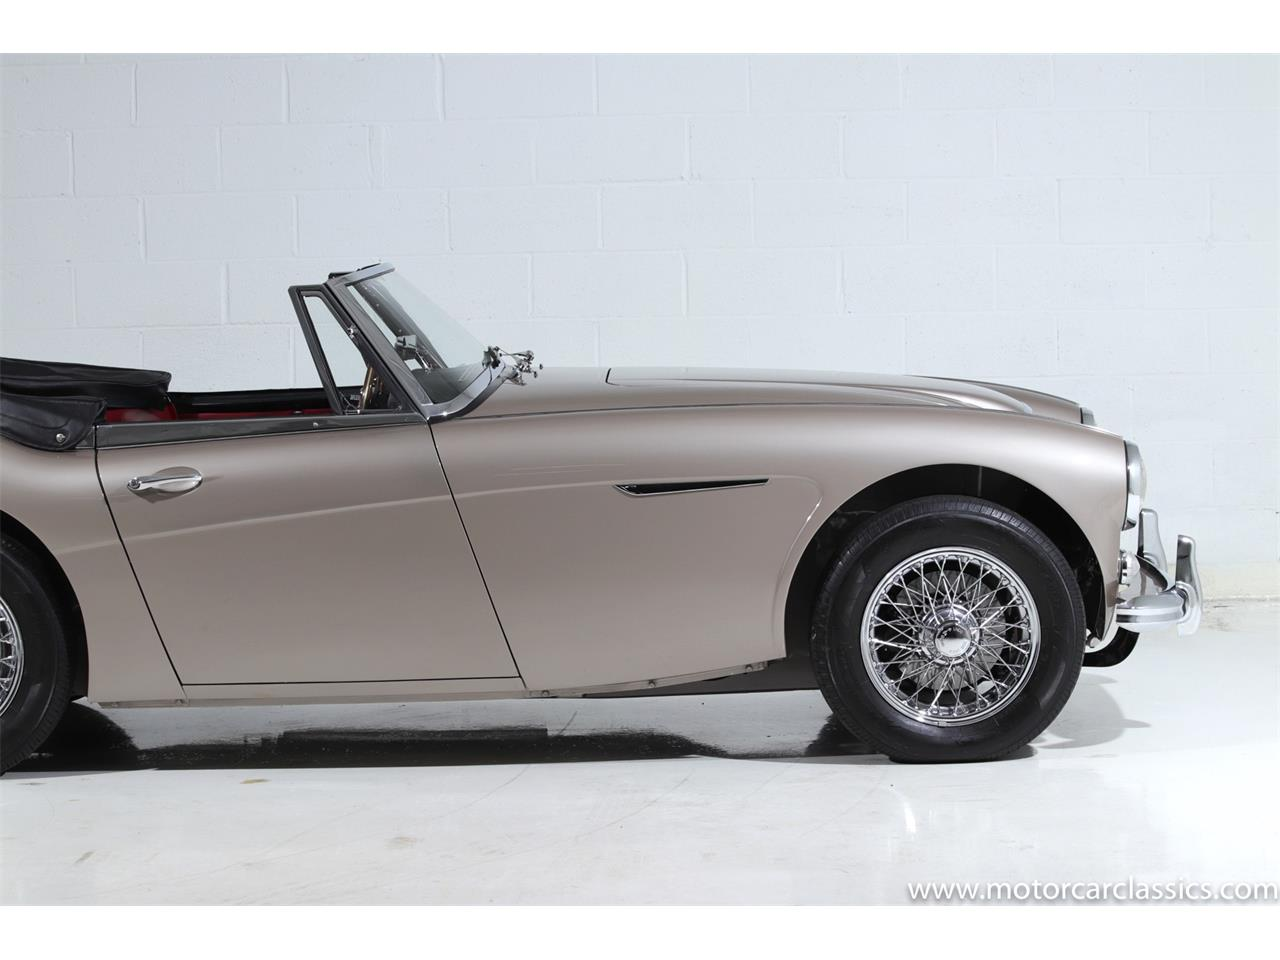 1964 Austin-Healey 3000 for sale in Farmingdale, NY – photo 15